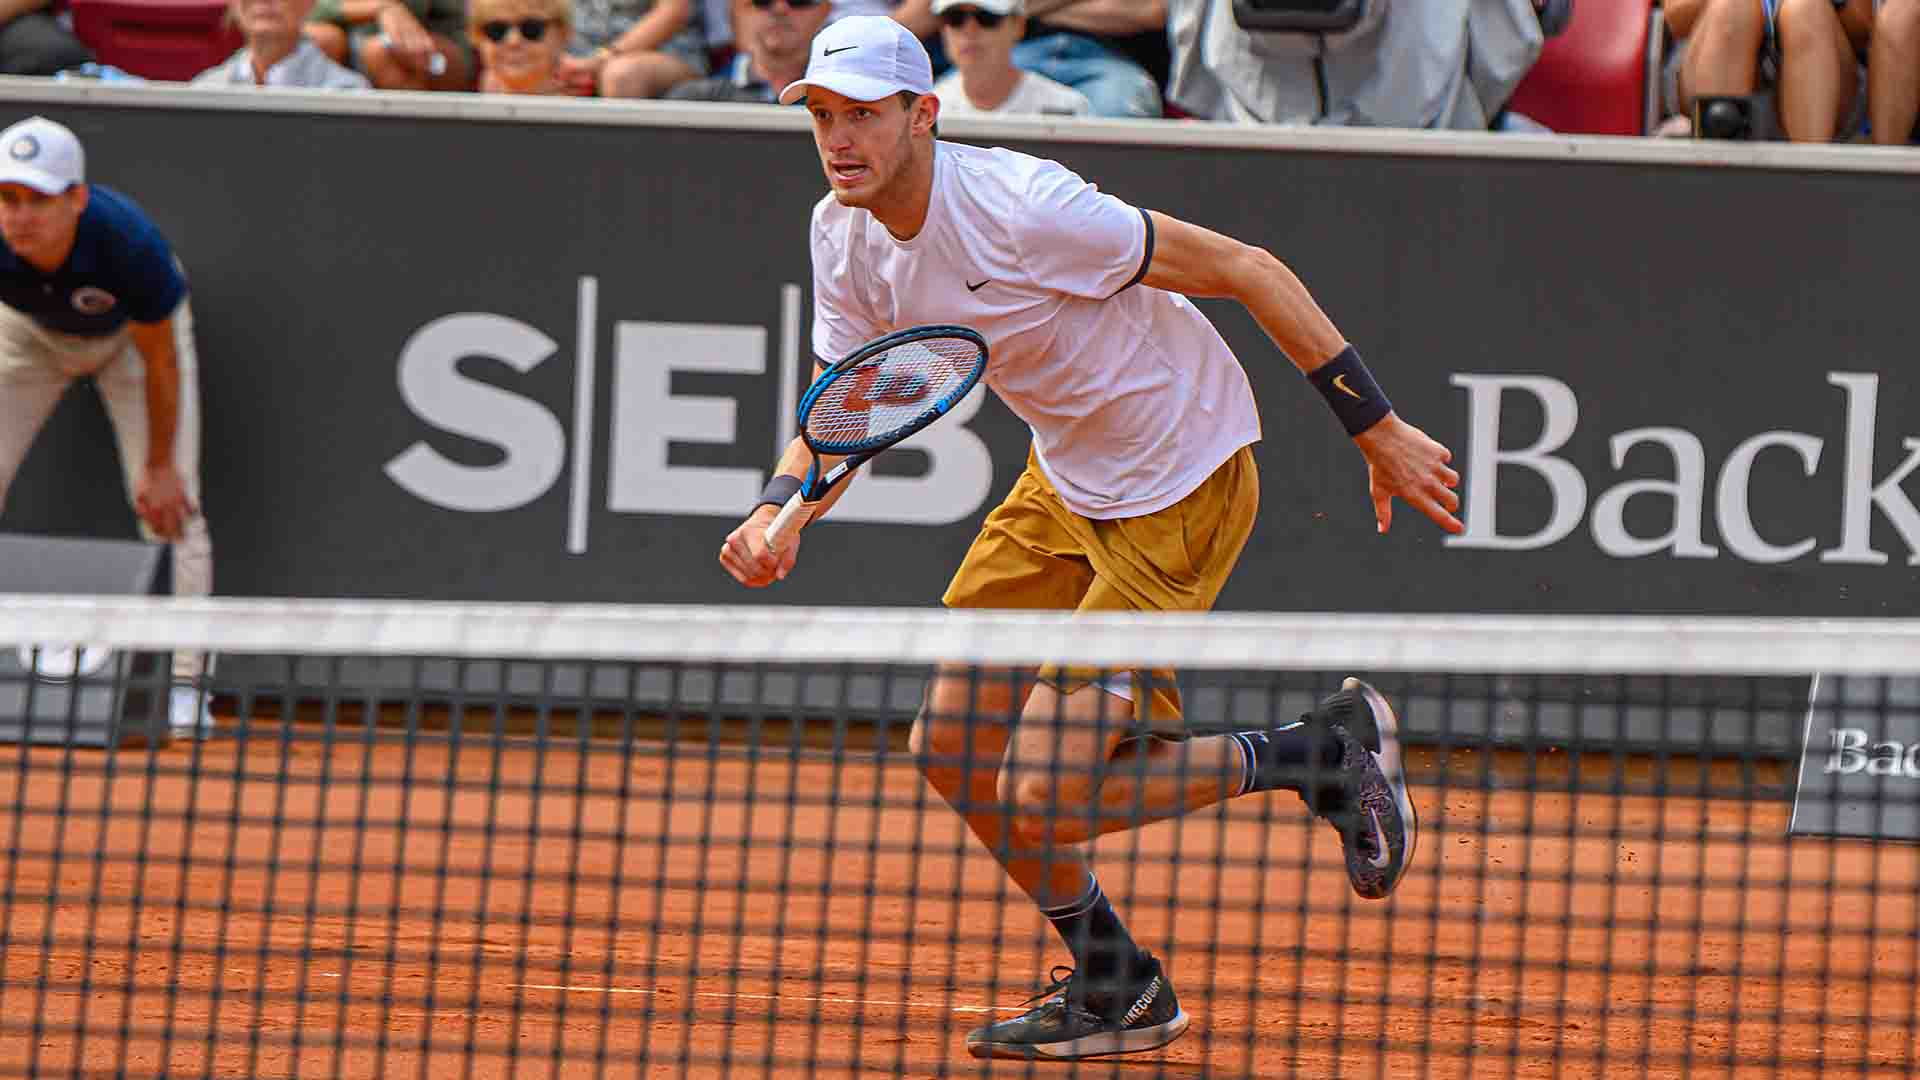 Nicolas Jarry converts two of two break points to beat Juan Ignacio Londero in the Swedish Open final on Sunday.